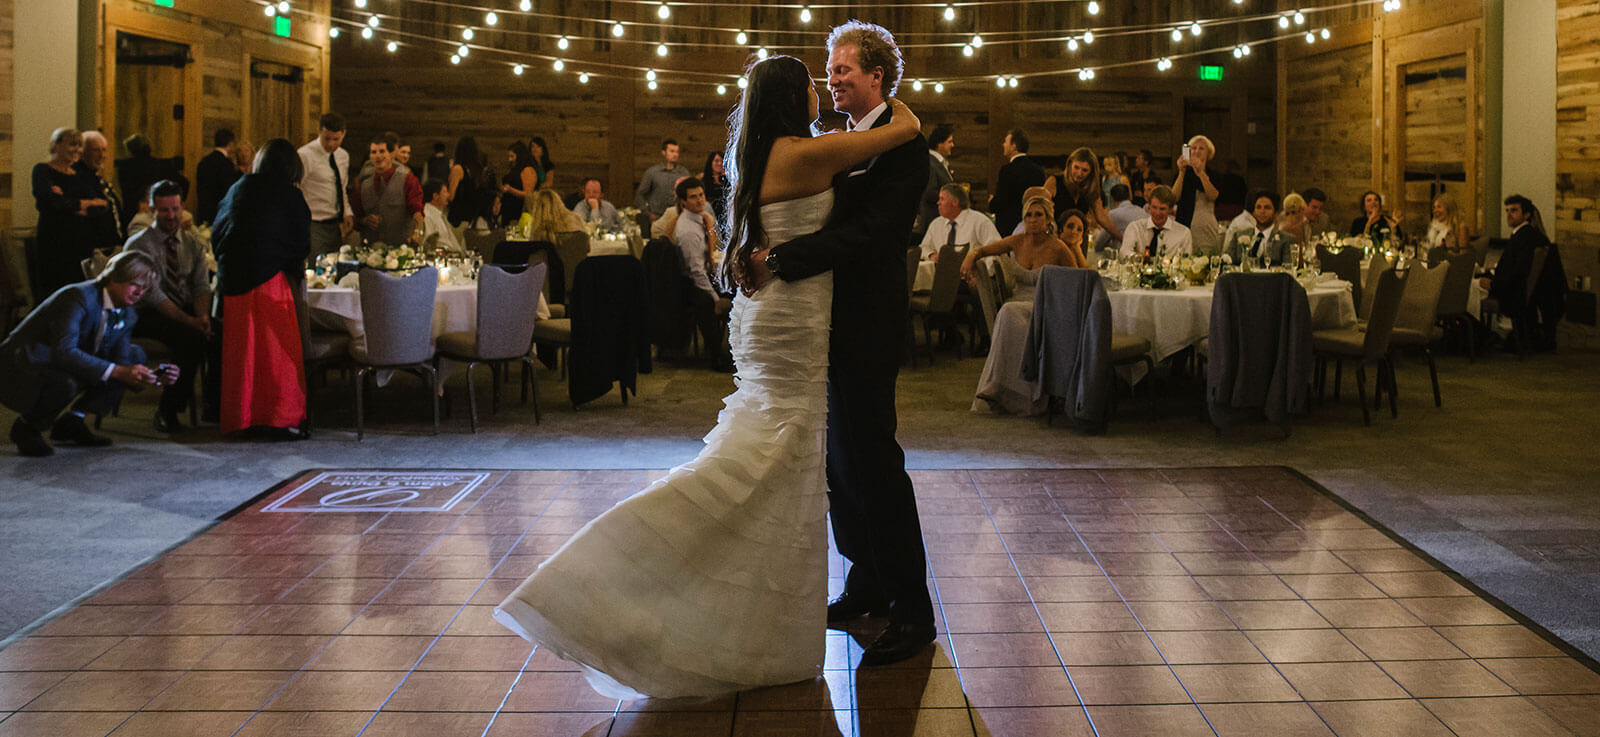 The first dance at a wedding on a portable dance floors